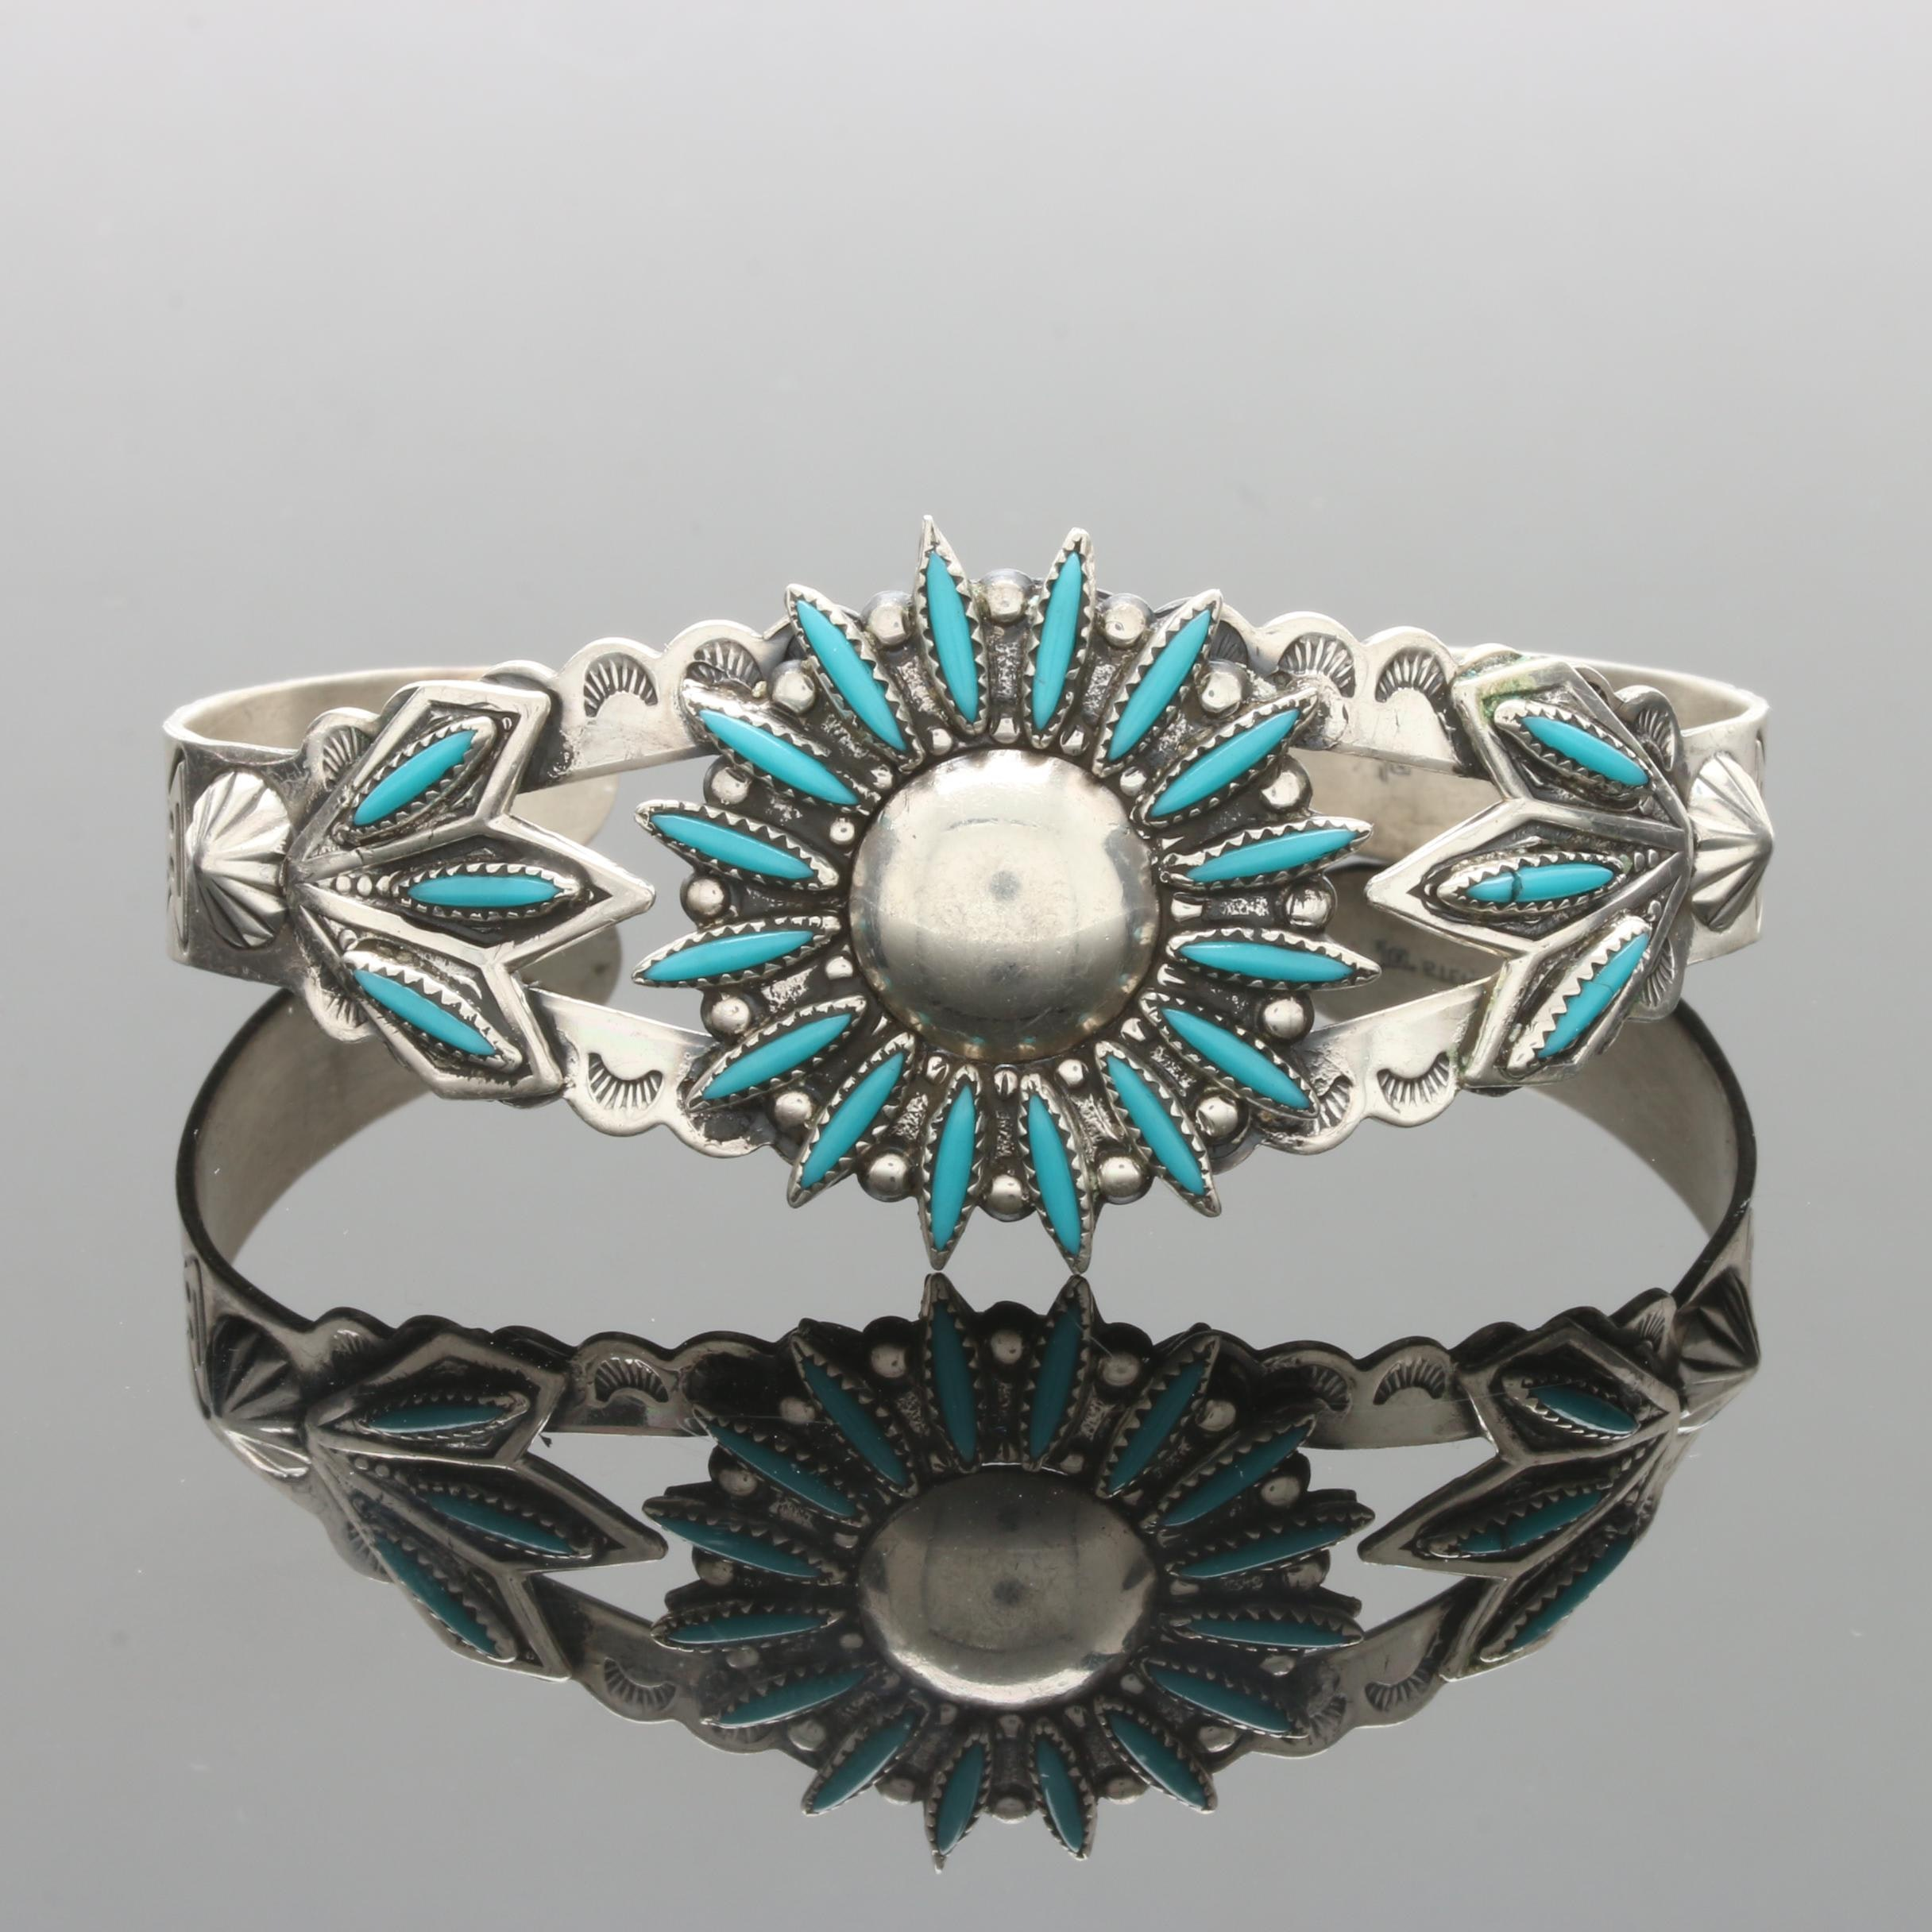 Bell Trading Post Southwestern Style Sterling Silver Turquoise Cuff Bracelet